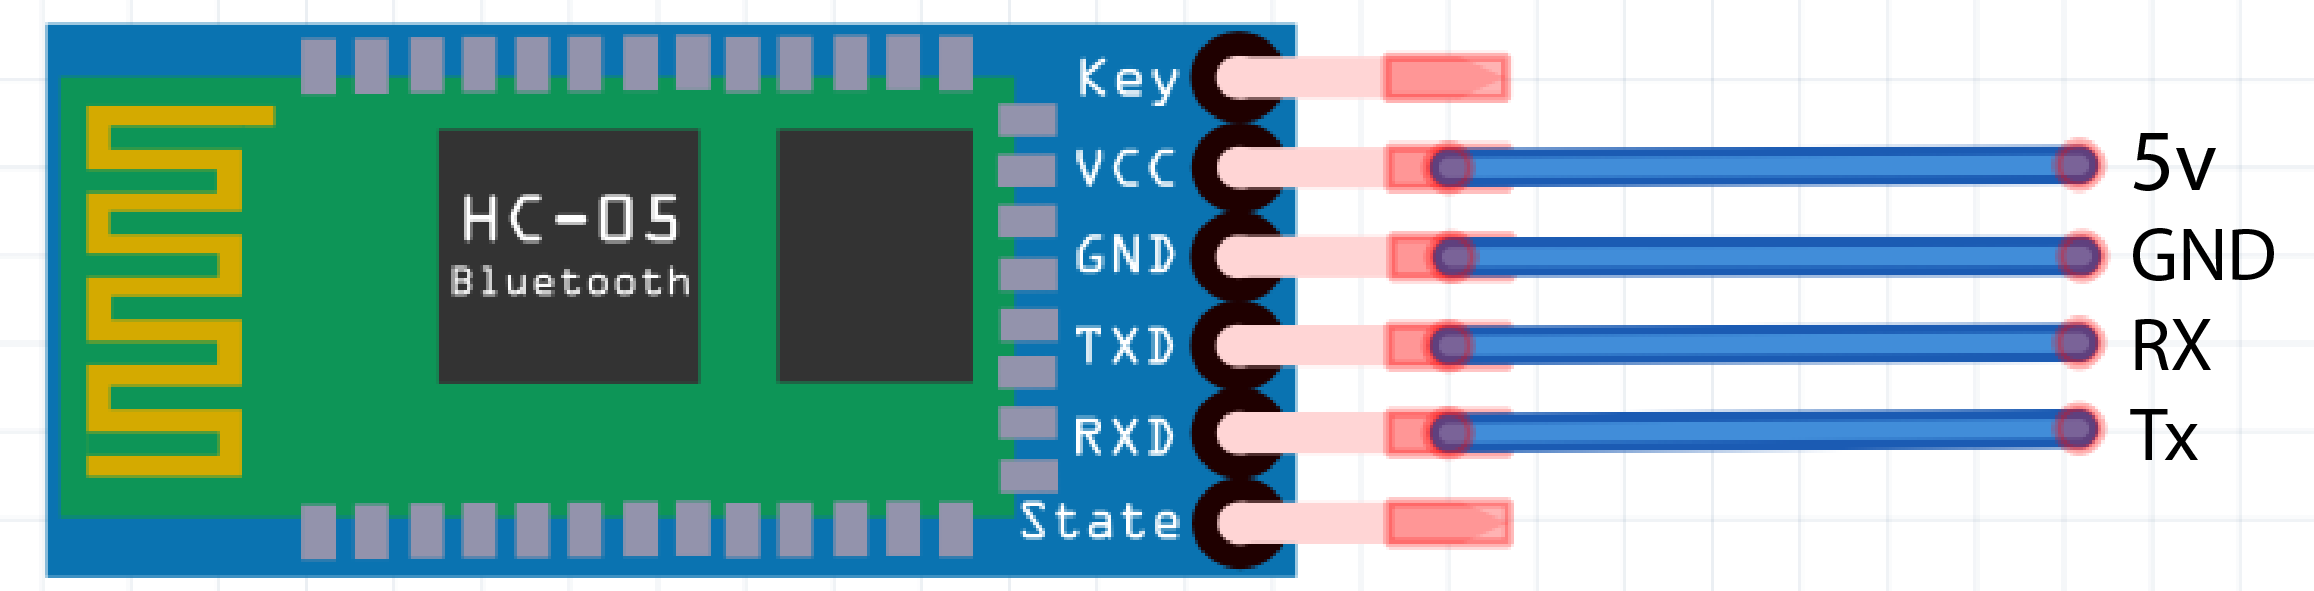 Interface And Application Programming Transmitterreceiverradiocontrolschematicdiagrampng Here We Are Connecting Blutooth Vcc Connect 5v Gndconnect Gnd Rxd Tx Becasue The Transmitter Should Be Talking To Receiver Not Another